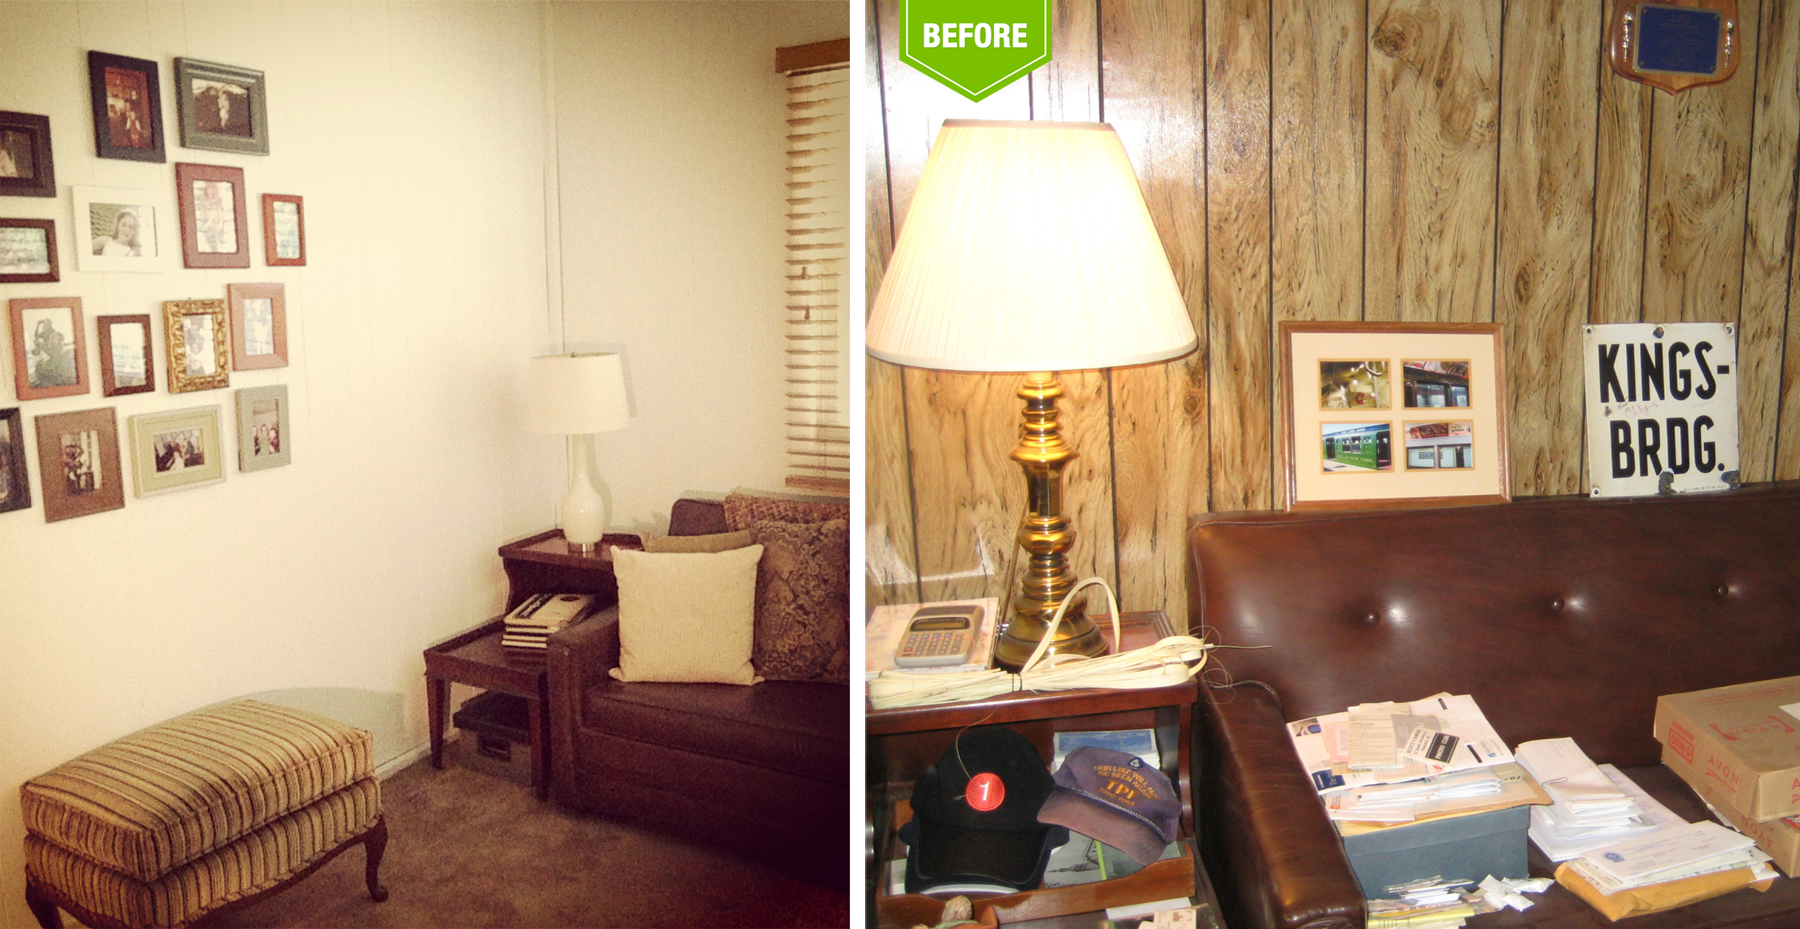 LampCouch_BeforeAfter_COMBINED2.jpg